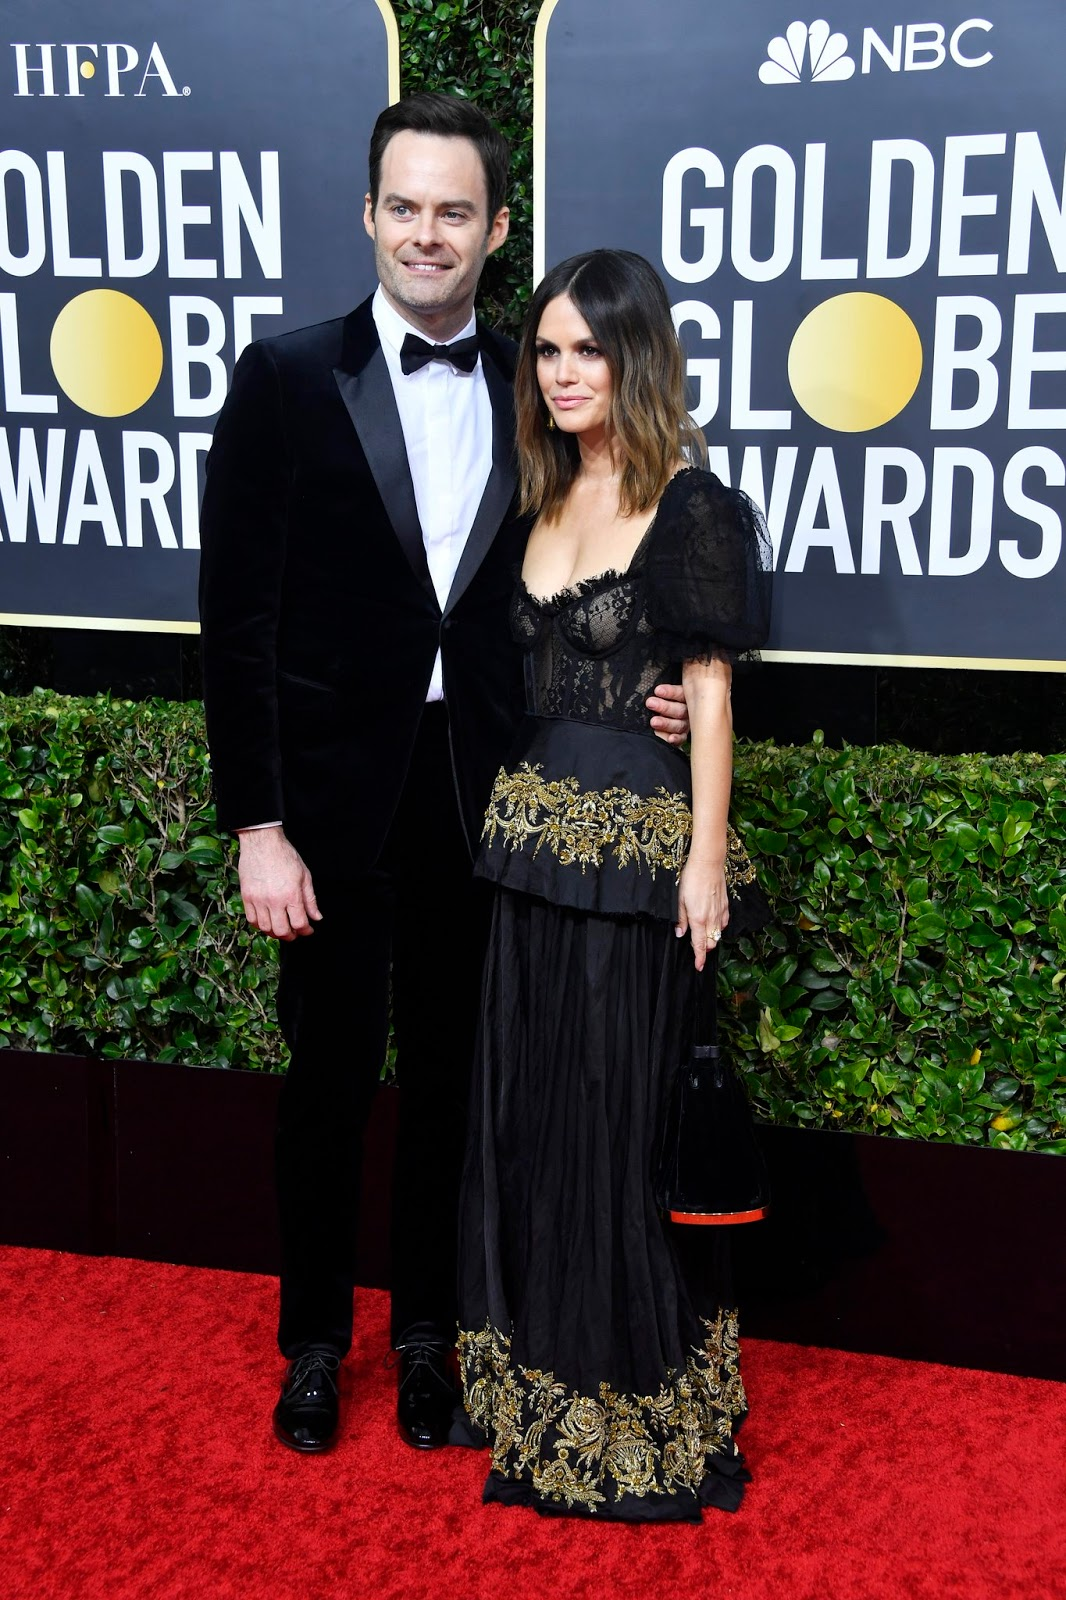 Bill Hader and Rachel Bilson at the 77th Annual Golden Globe Awards arrivals